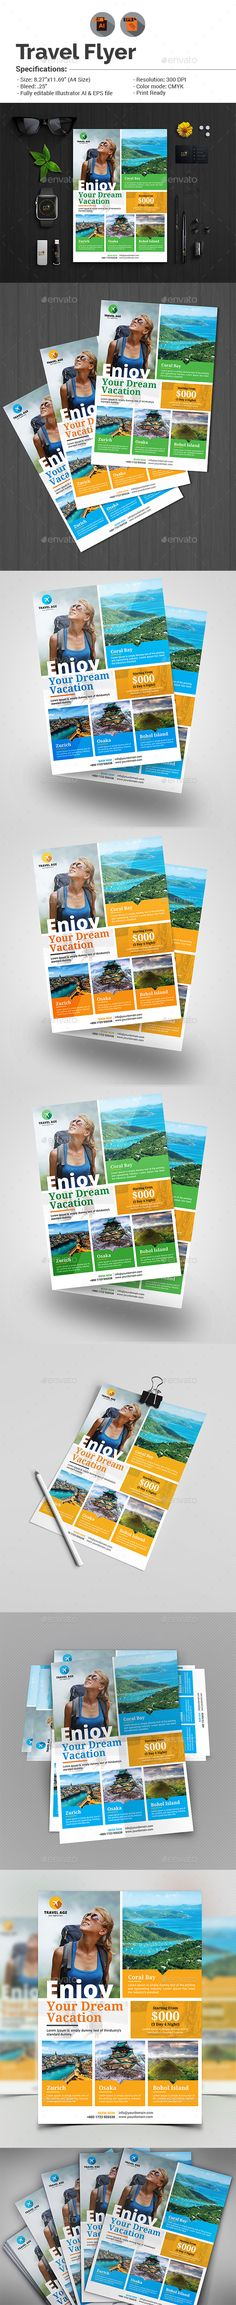 Holiday Tour & Travel Flyer Template Vector EPS, AI Illustrator